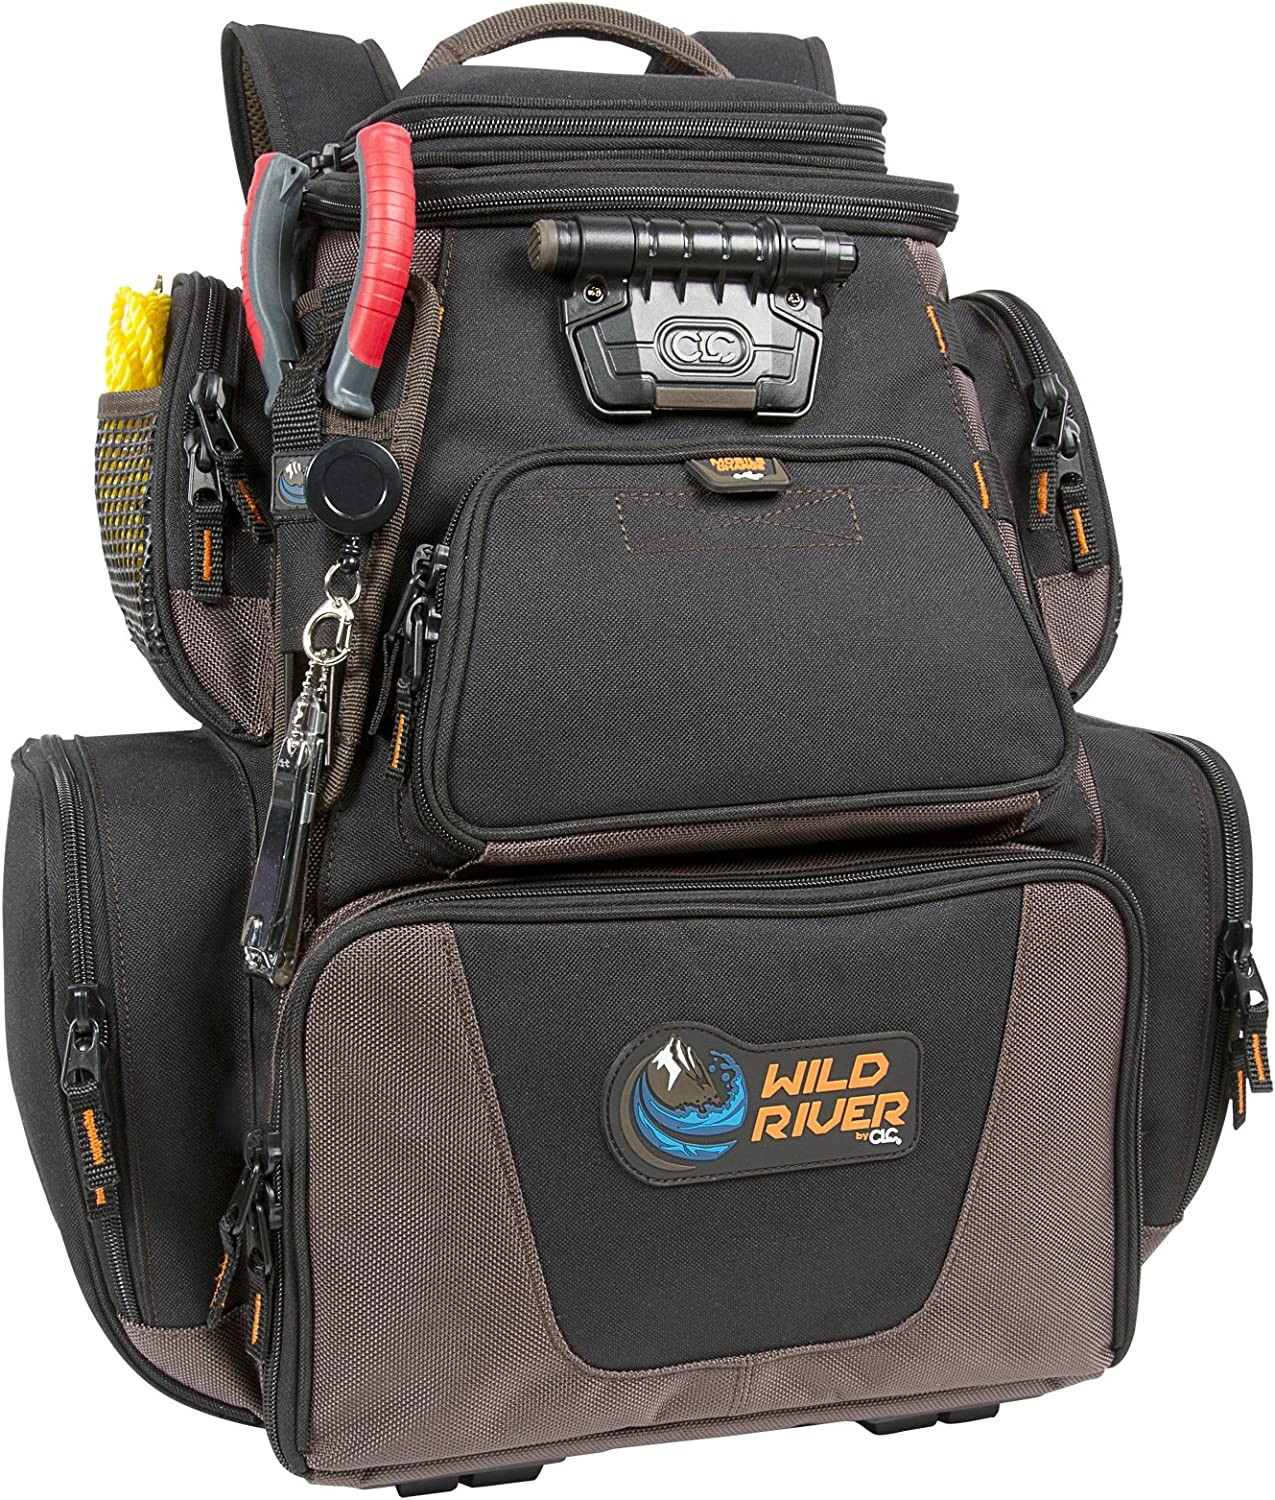 wild river nomad lighted tackle pack